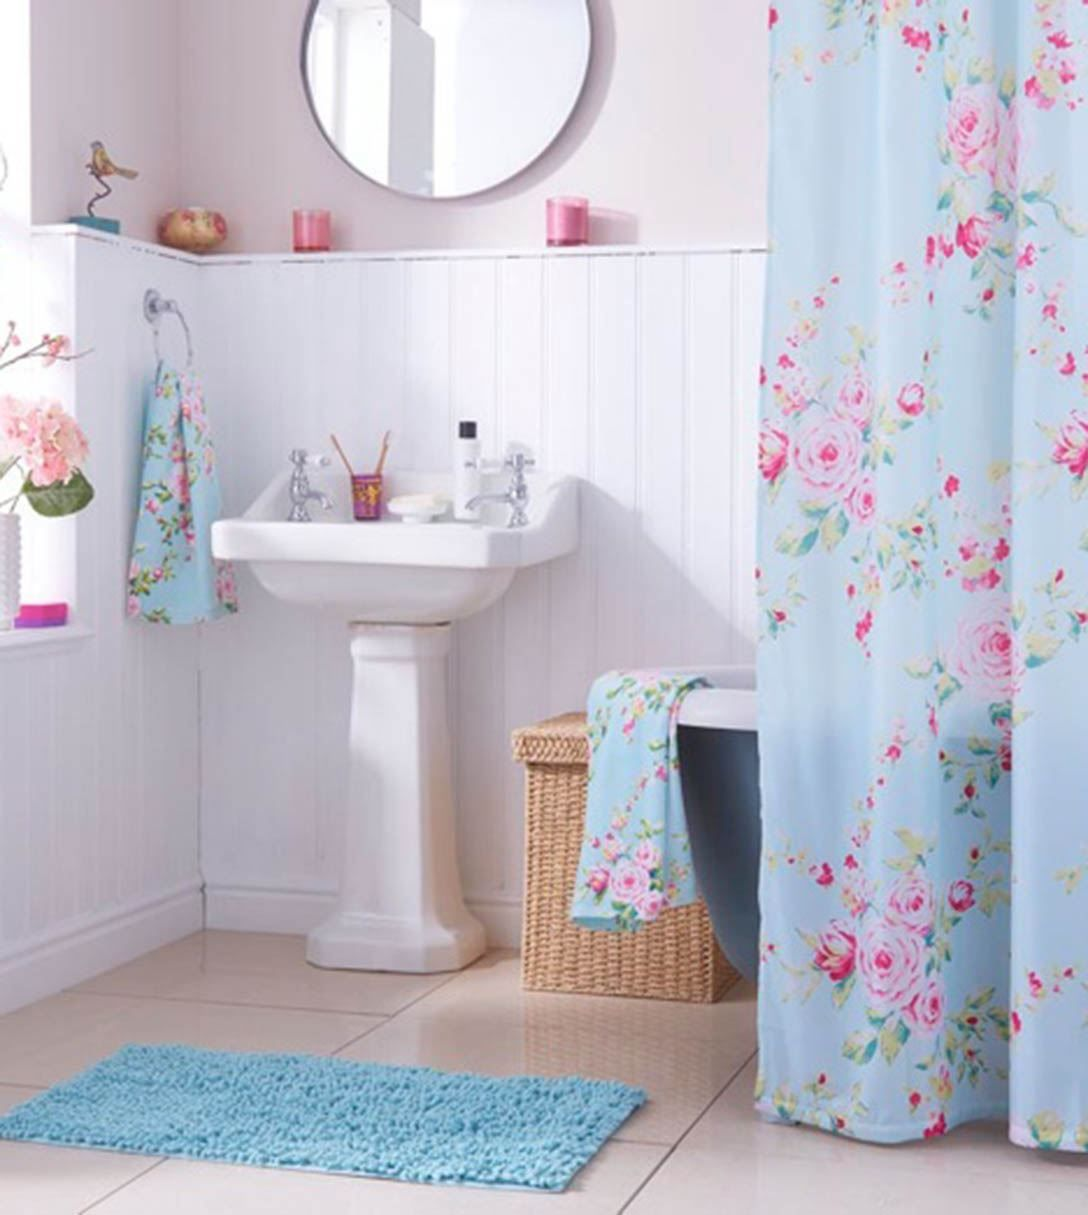 Cute Girly Shower Curtains Looks Cute Floral Shower Curtain Pink And Baby Blue Together